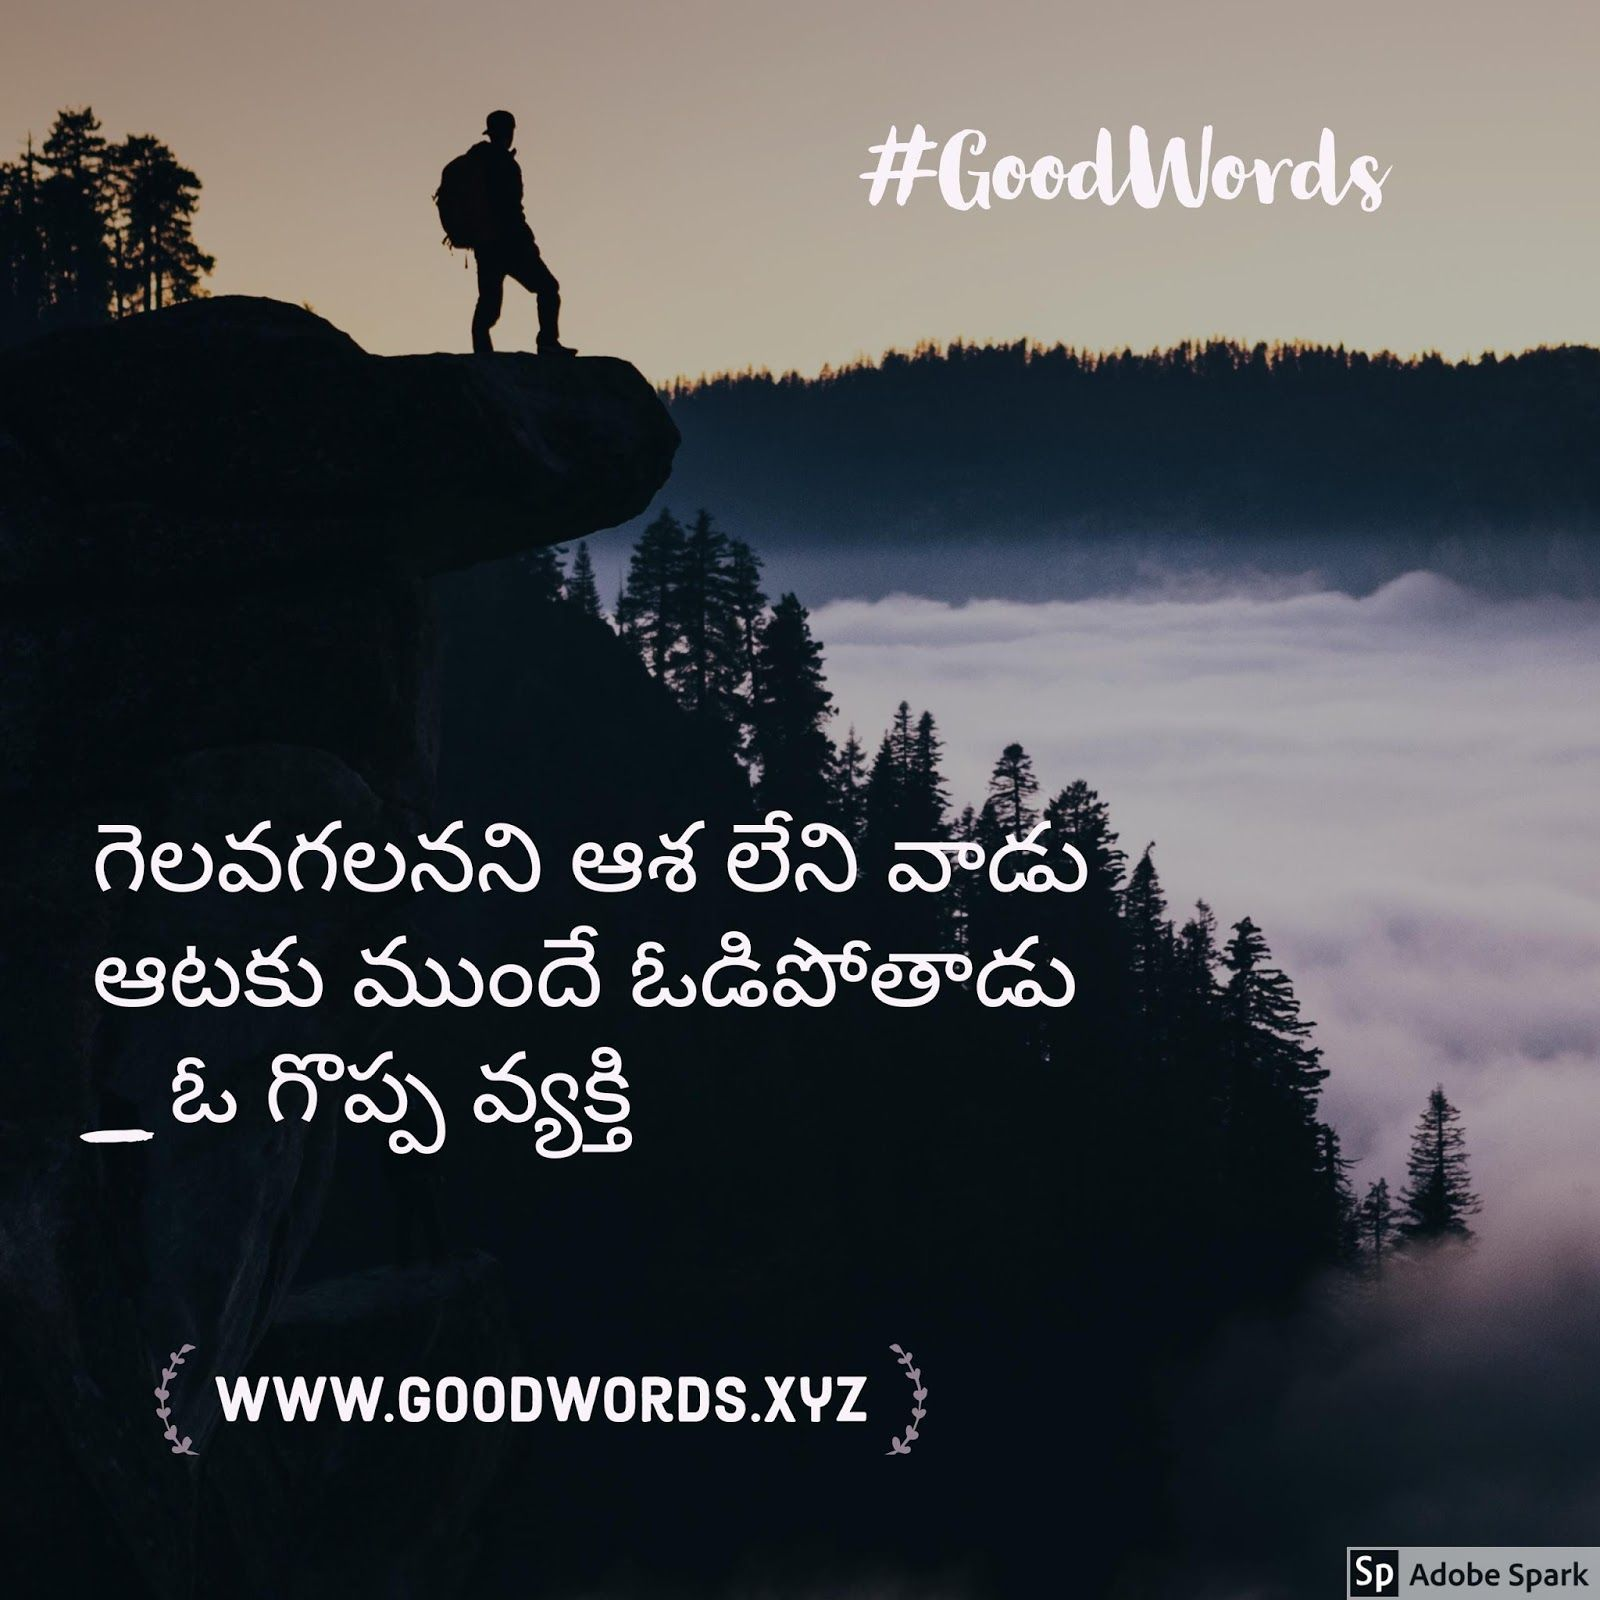 Quotes Hope Telugu Motivational Words About Successtelugu Quotes Mean In